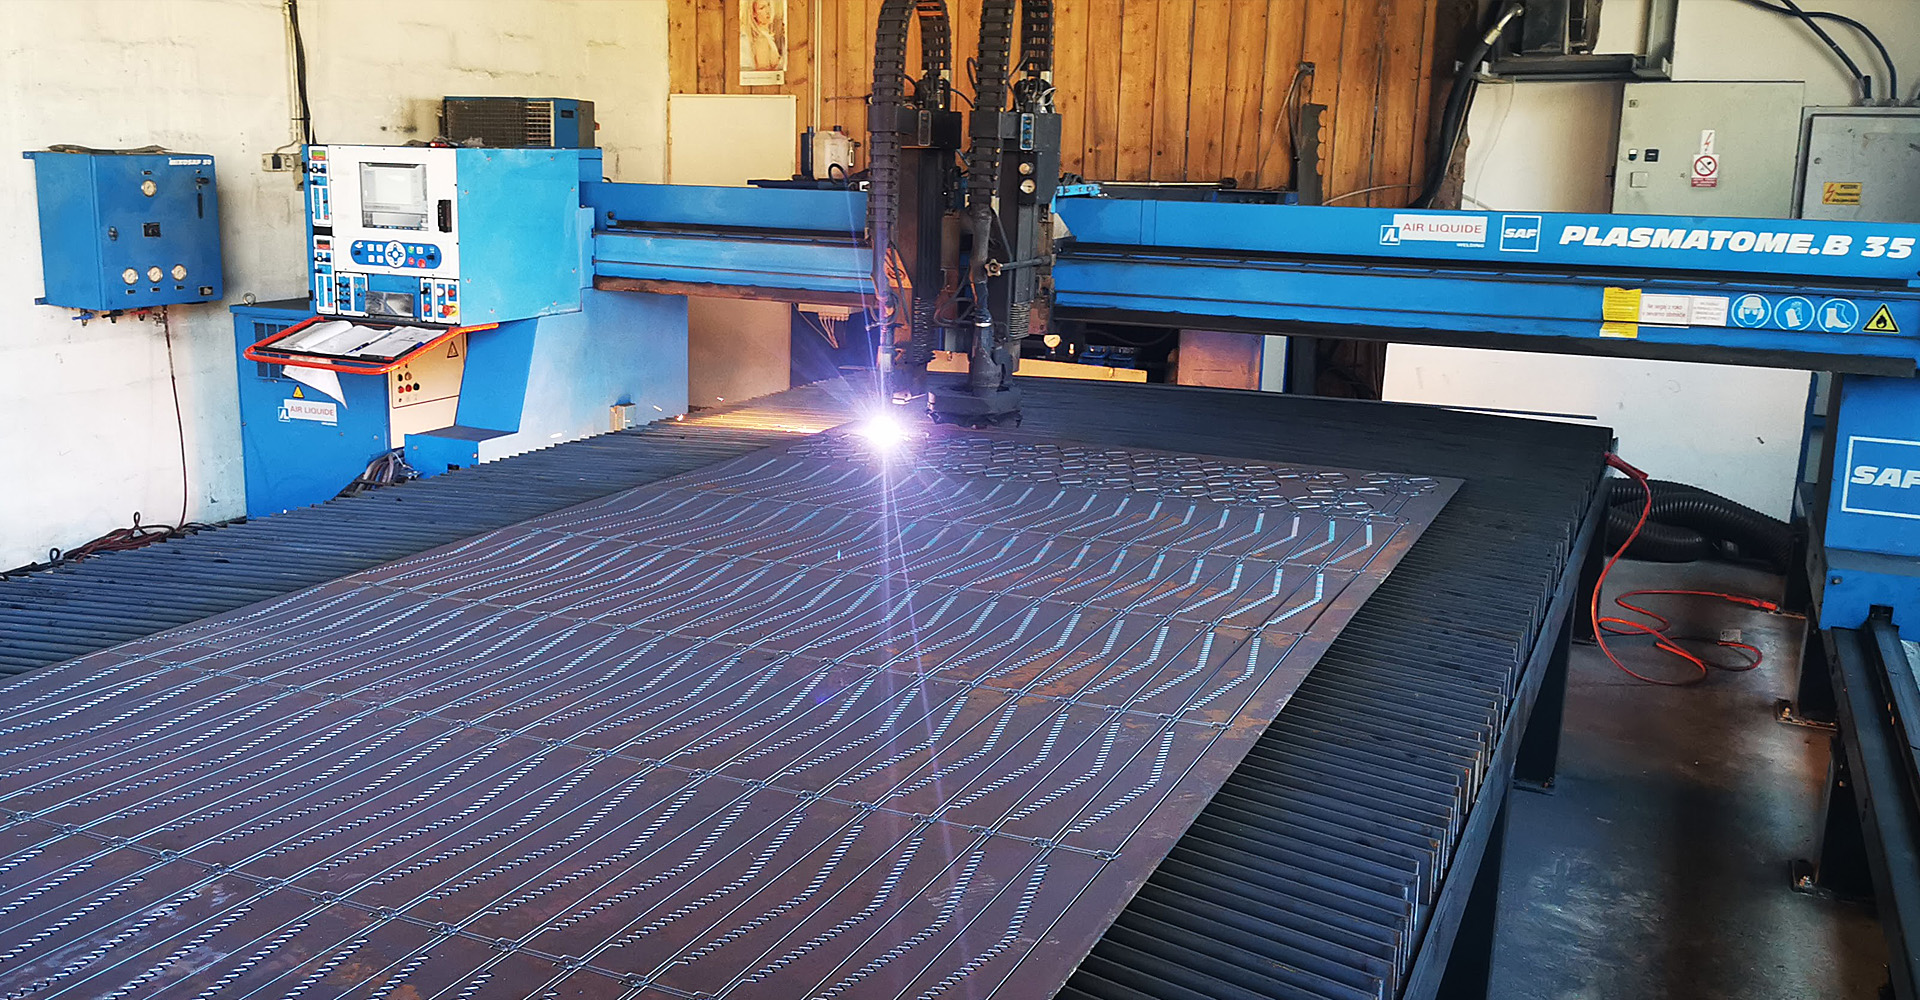 CNC Plasma & Waterjet cutting system controlled by MACH 3